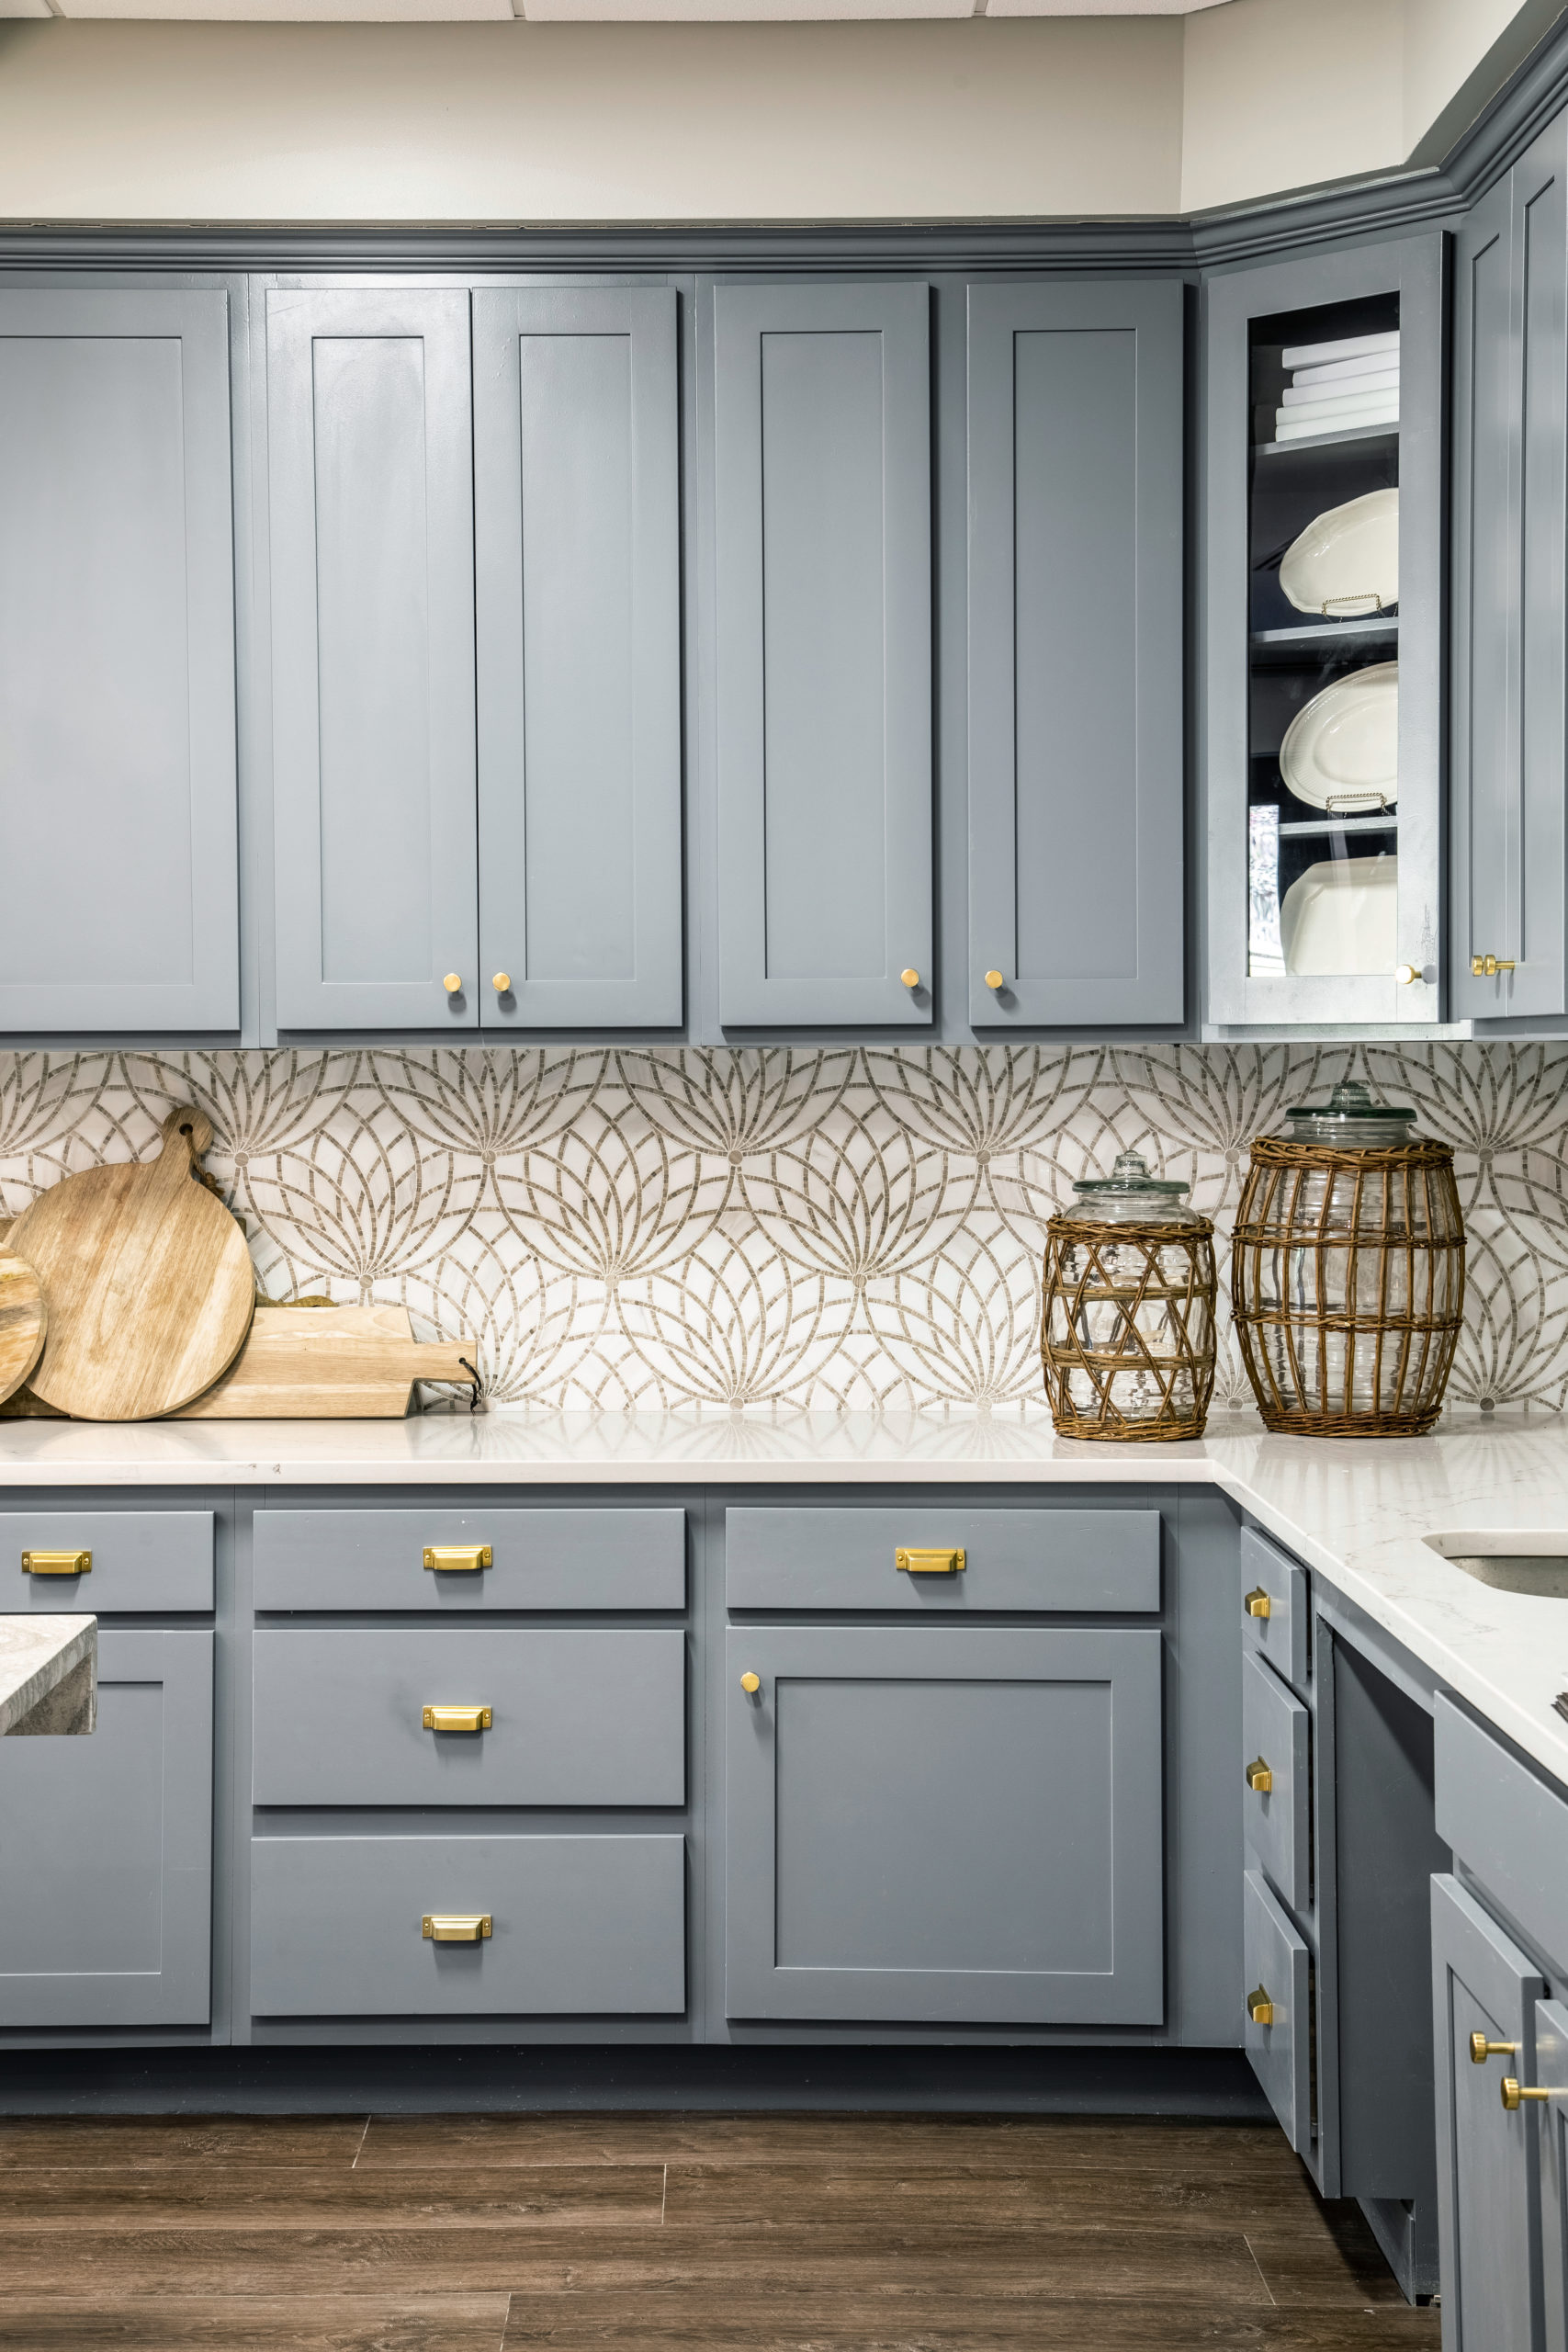 Blue cabinets and white counterops with basket and wooden decor in Longleaf common space